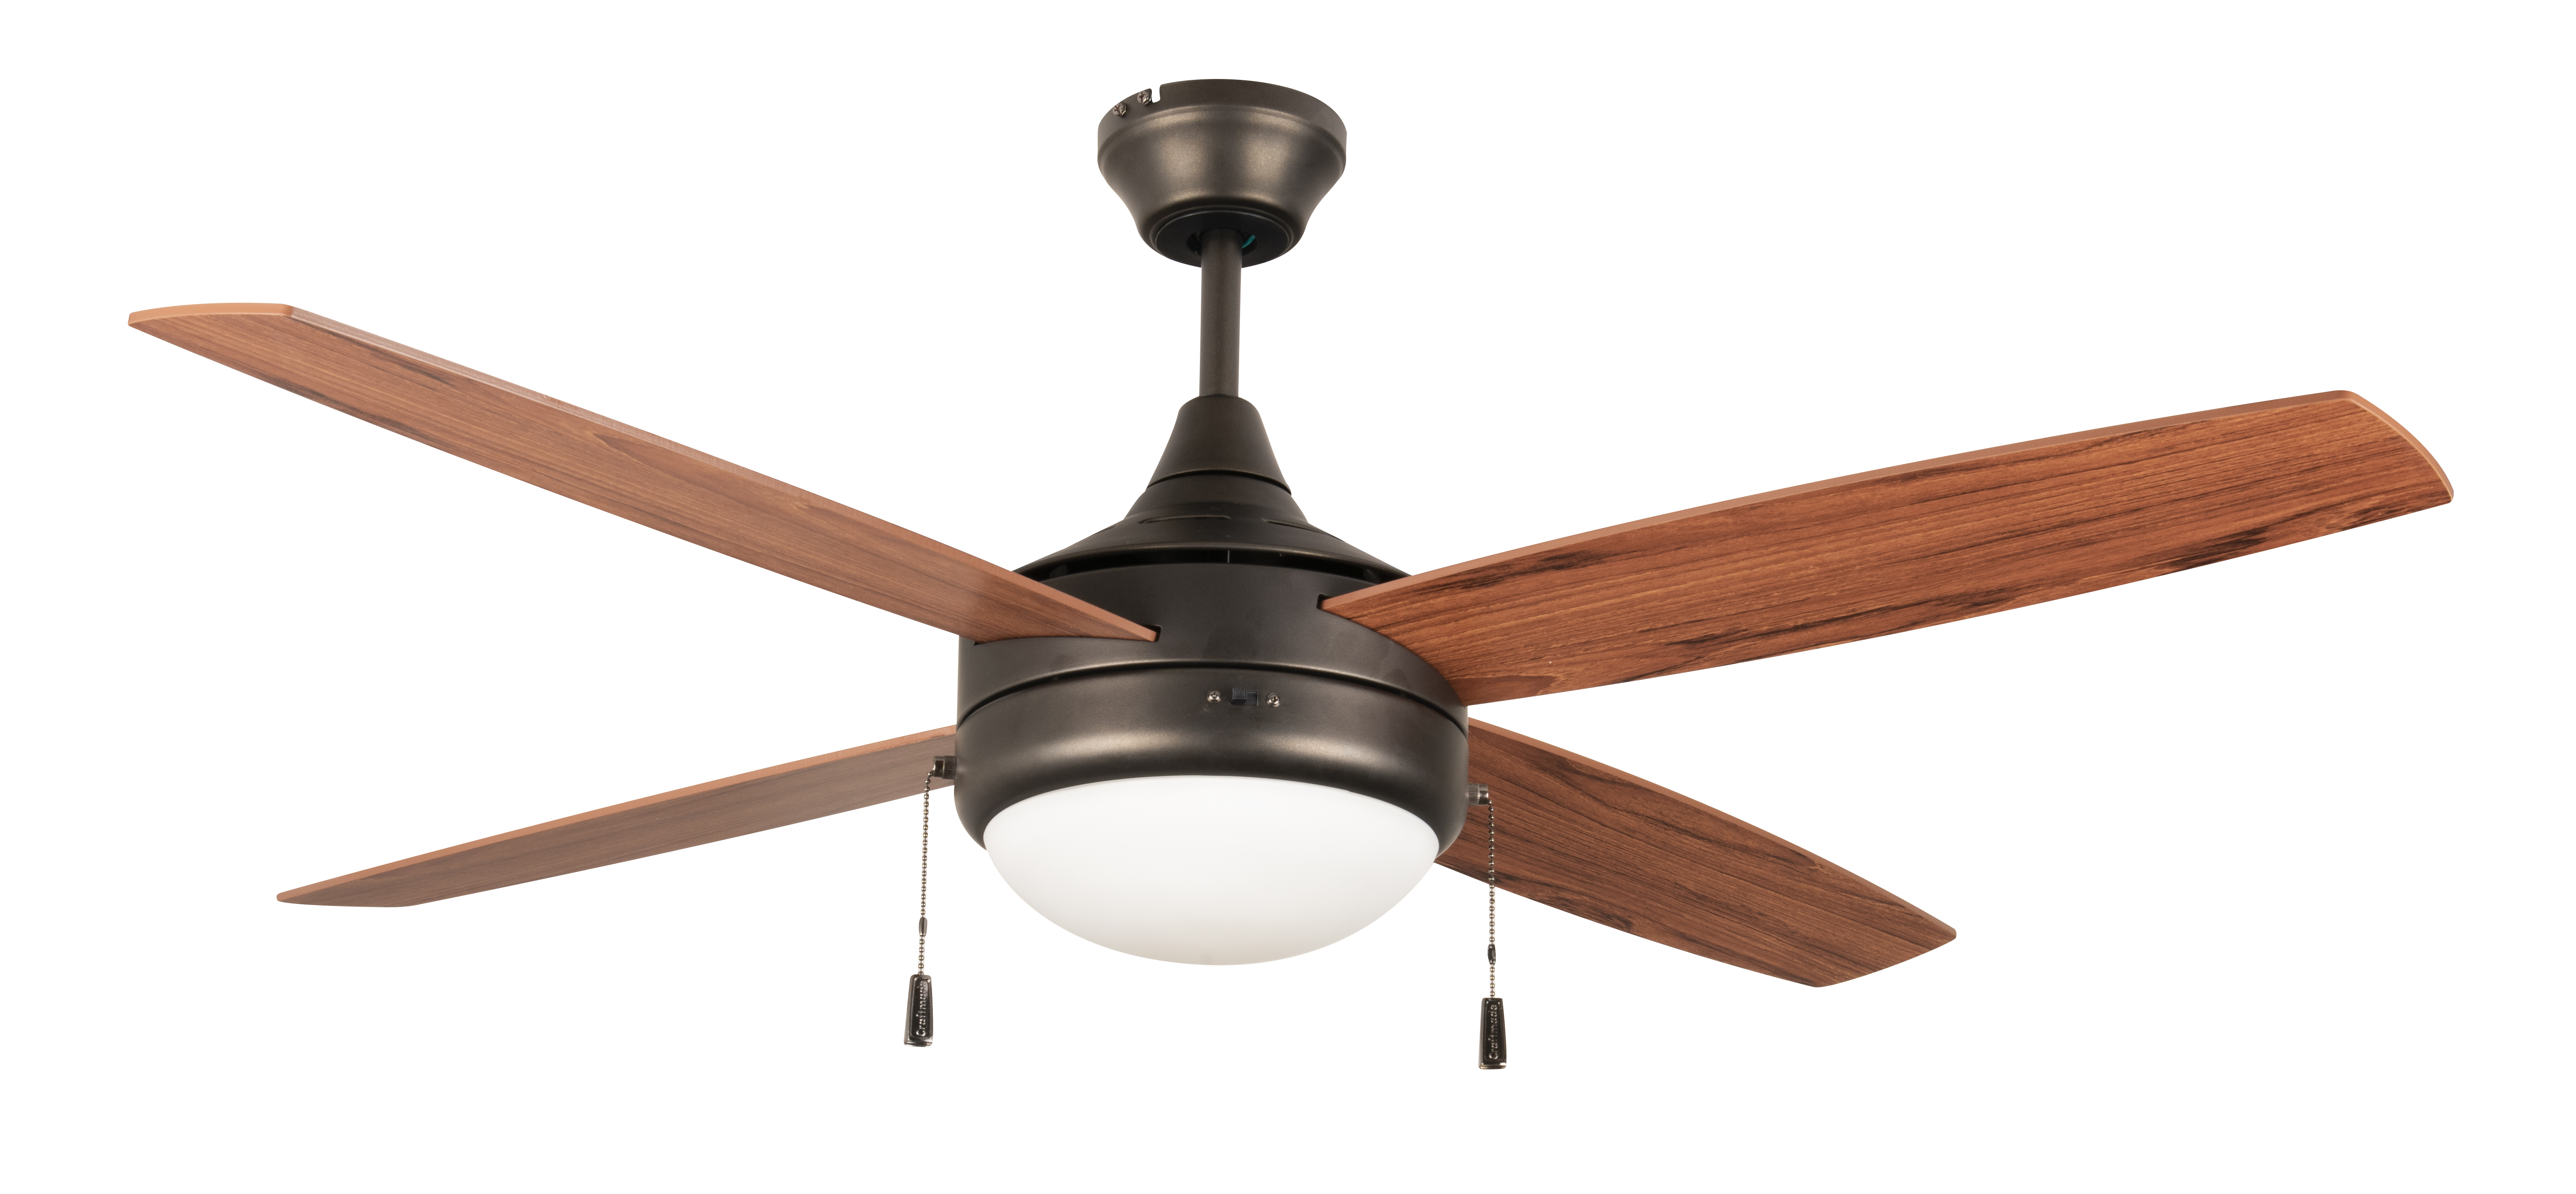 Craftmade Phaze ceiling fan